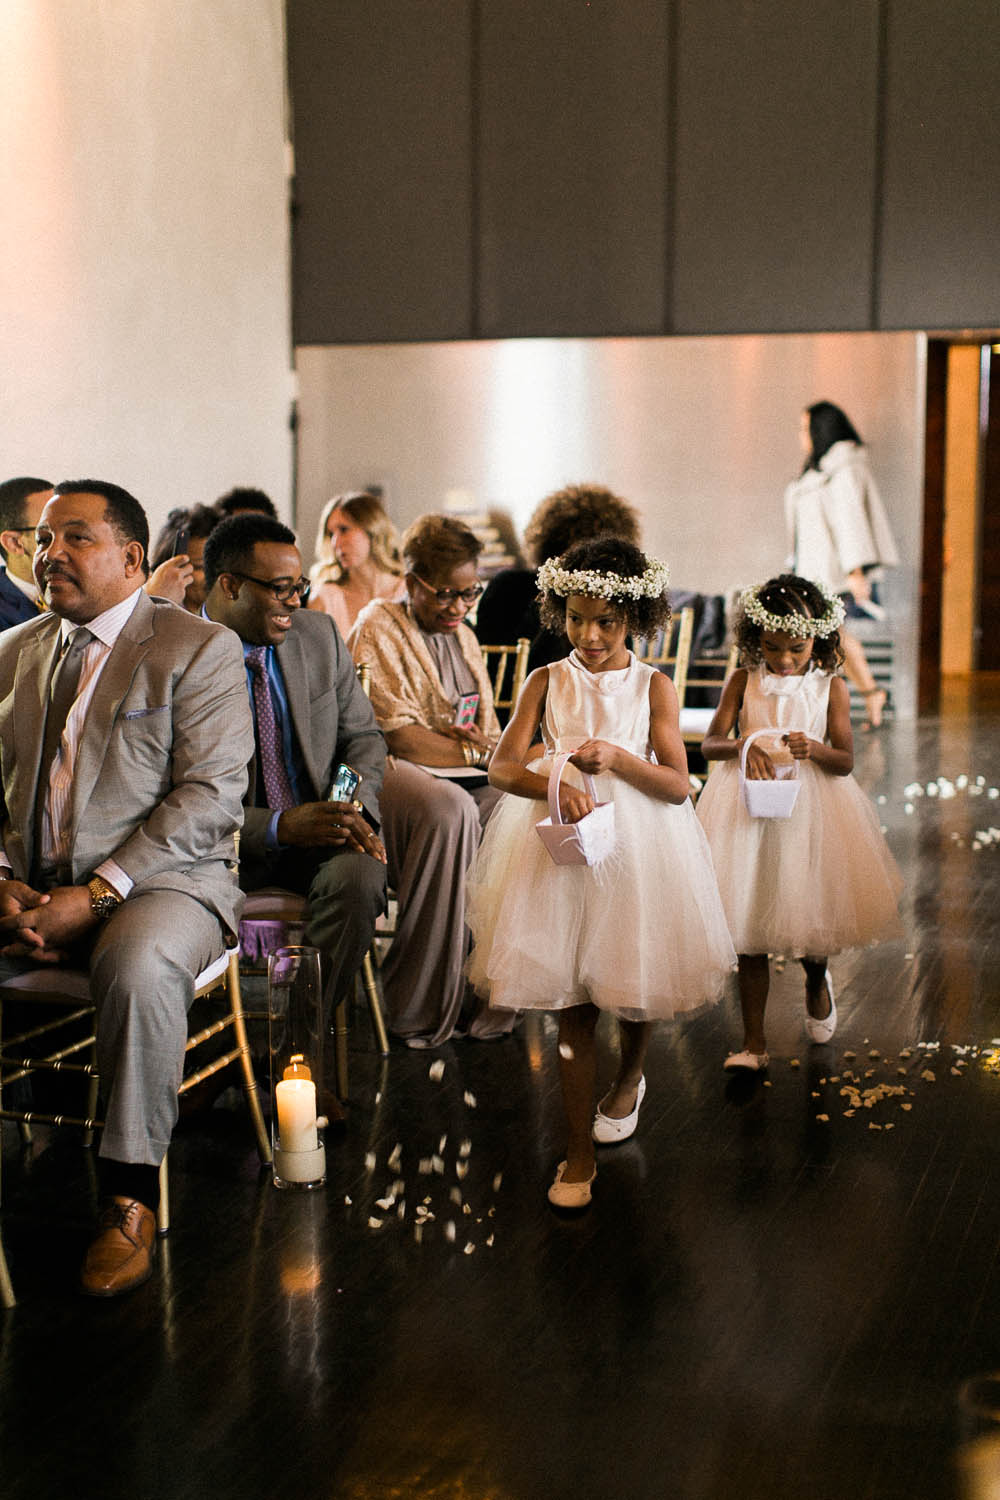 nashville ruby film documentary wedding photographer heartfelt real moments african american wedding munalachi bride ©2016abigailbobophotography-21.jpg